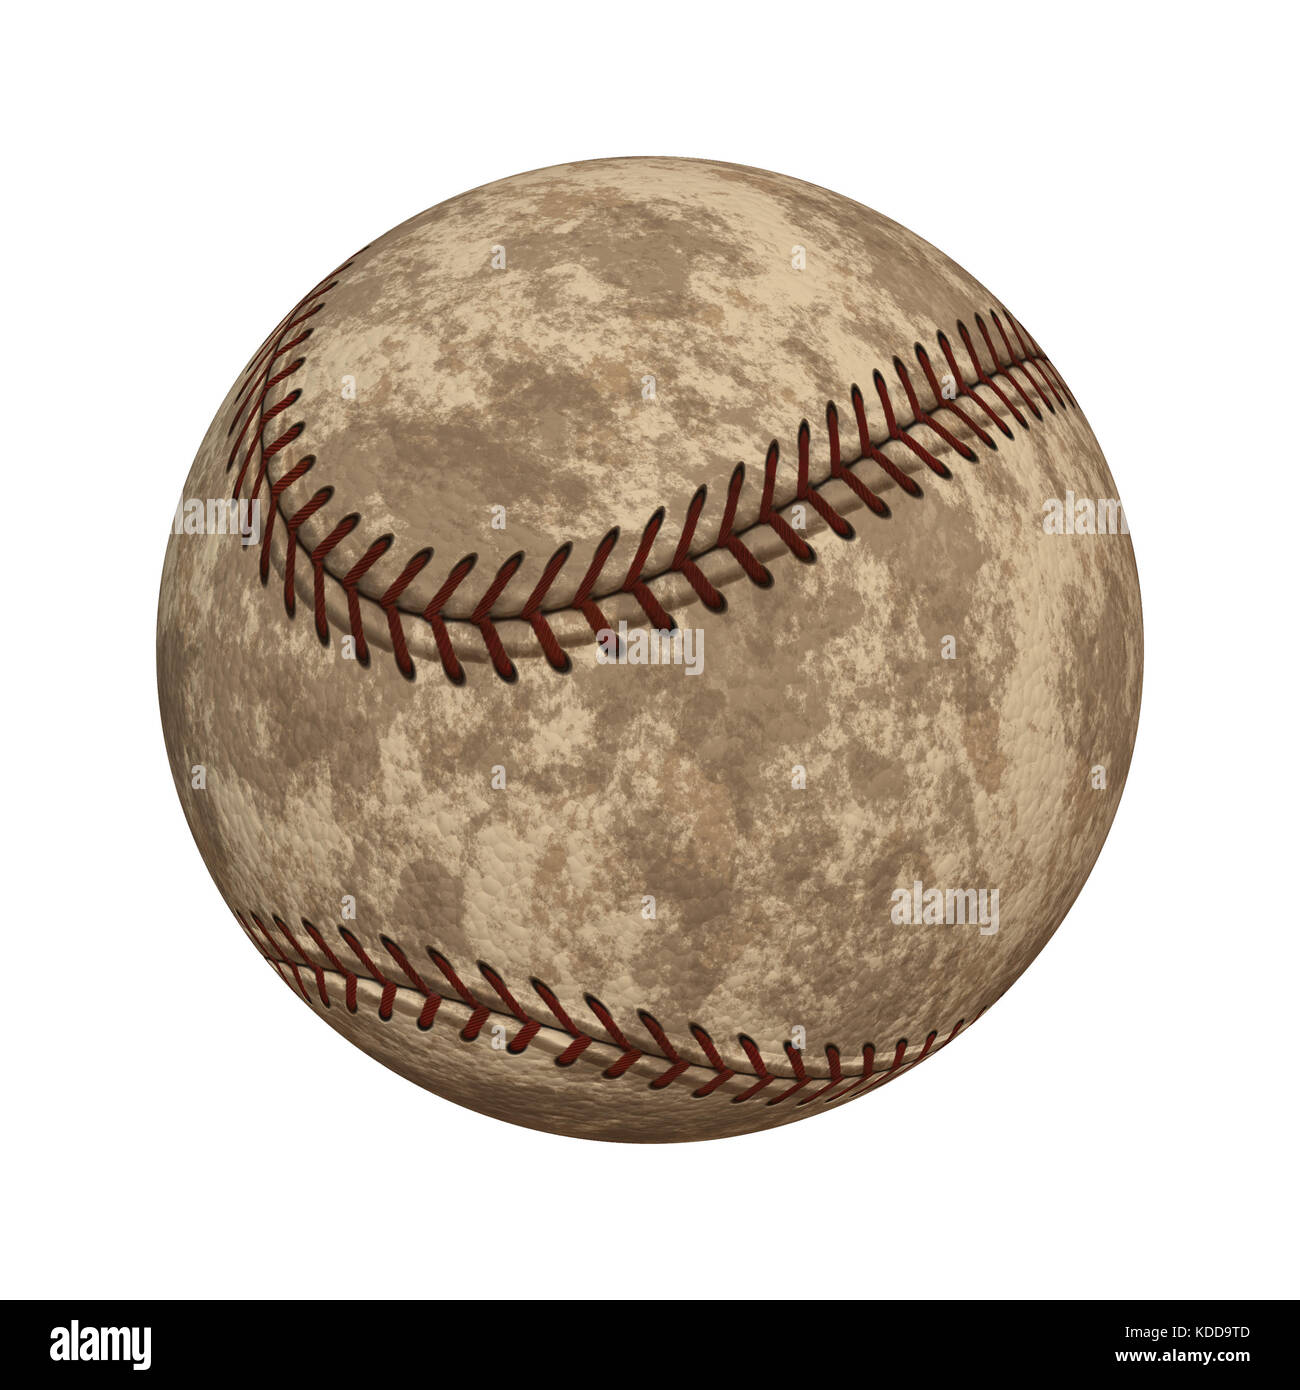 Old worn out baseball isolated on white background - Stock Image